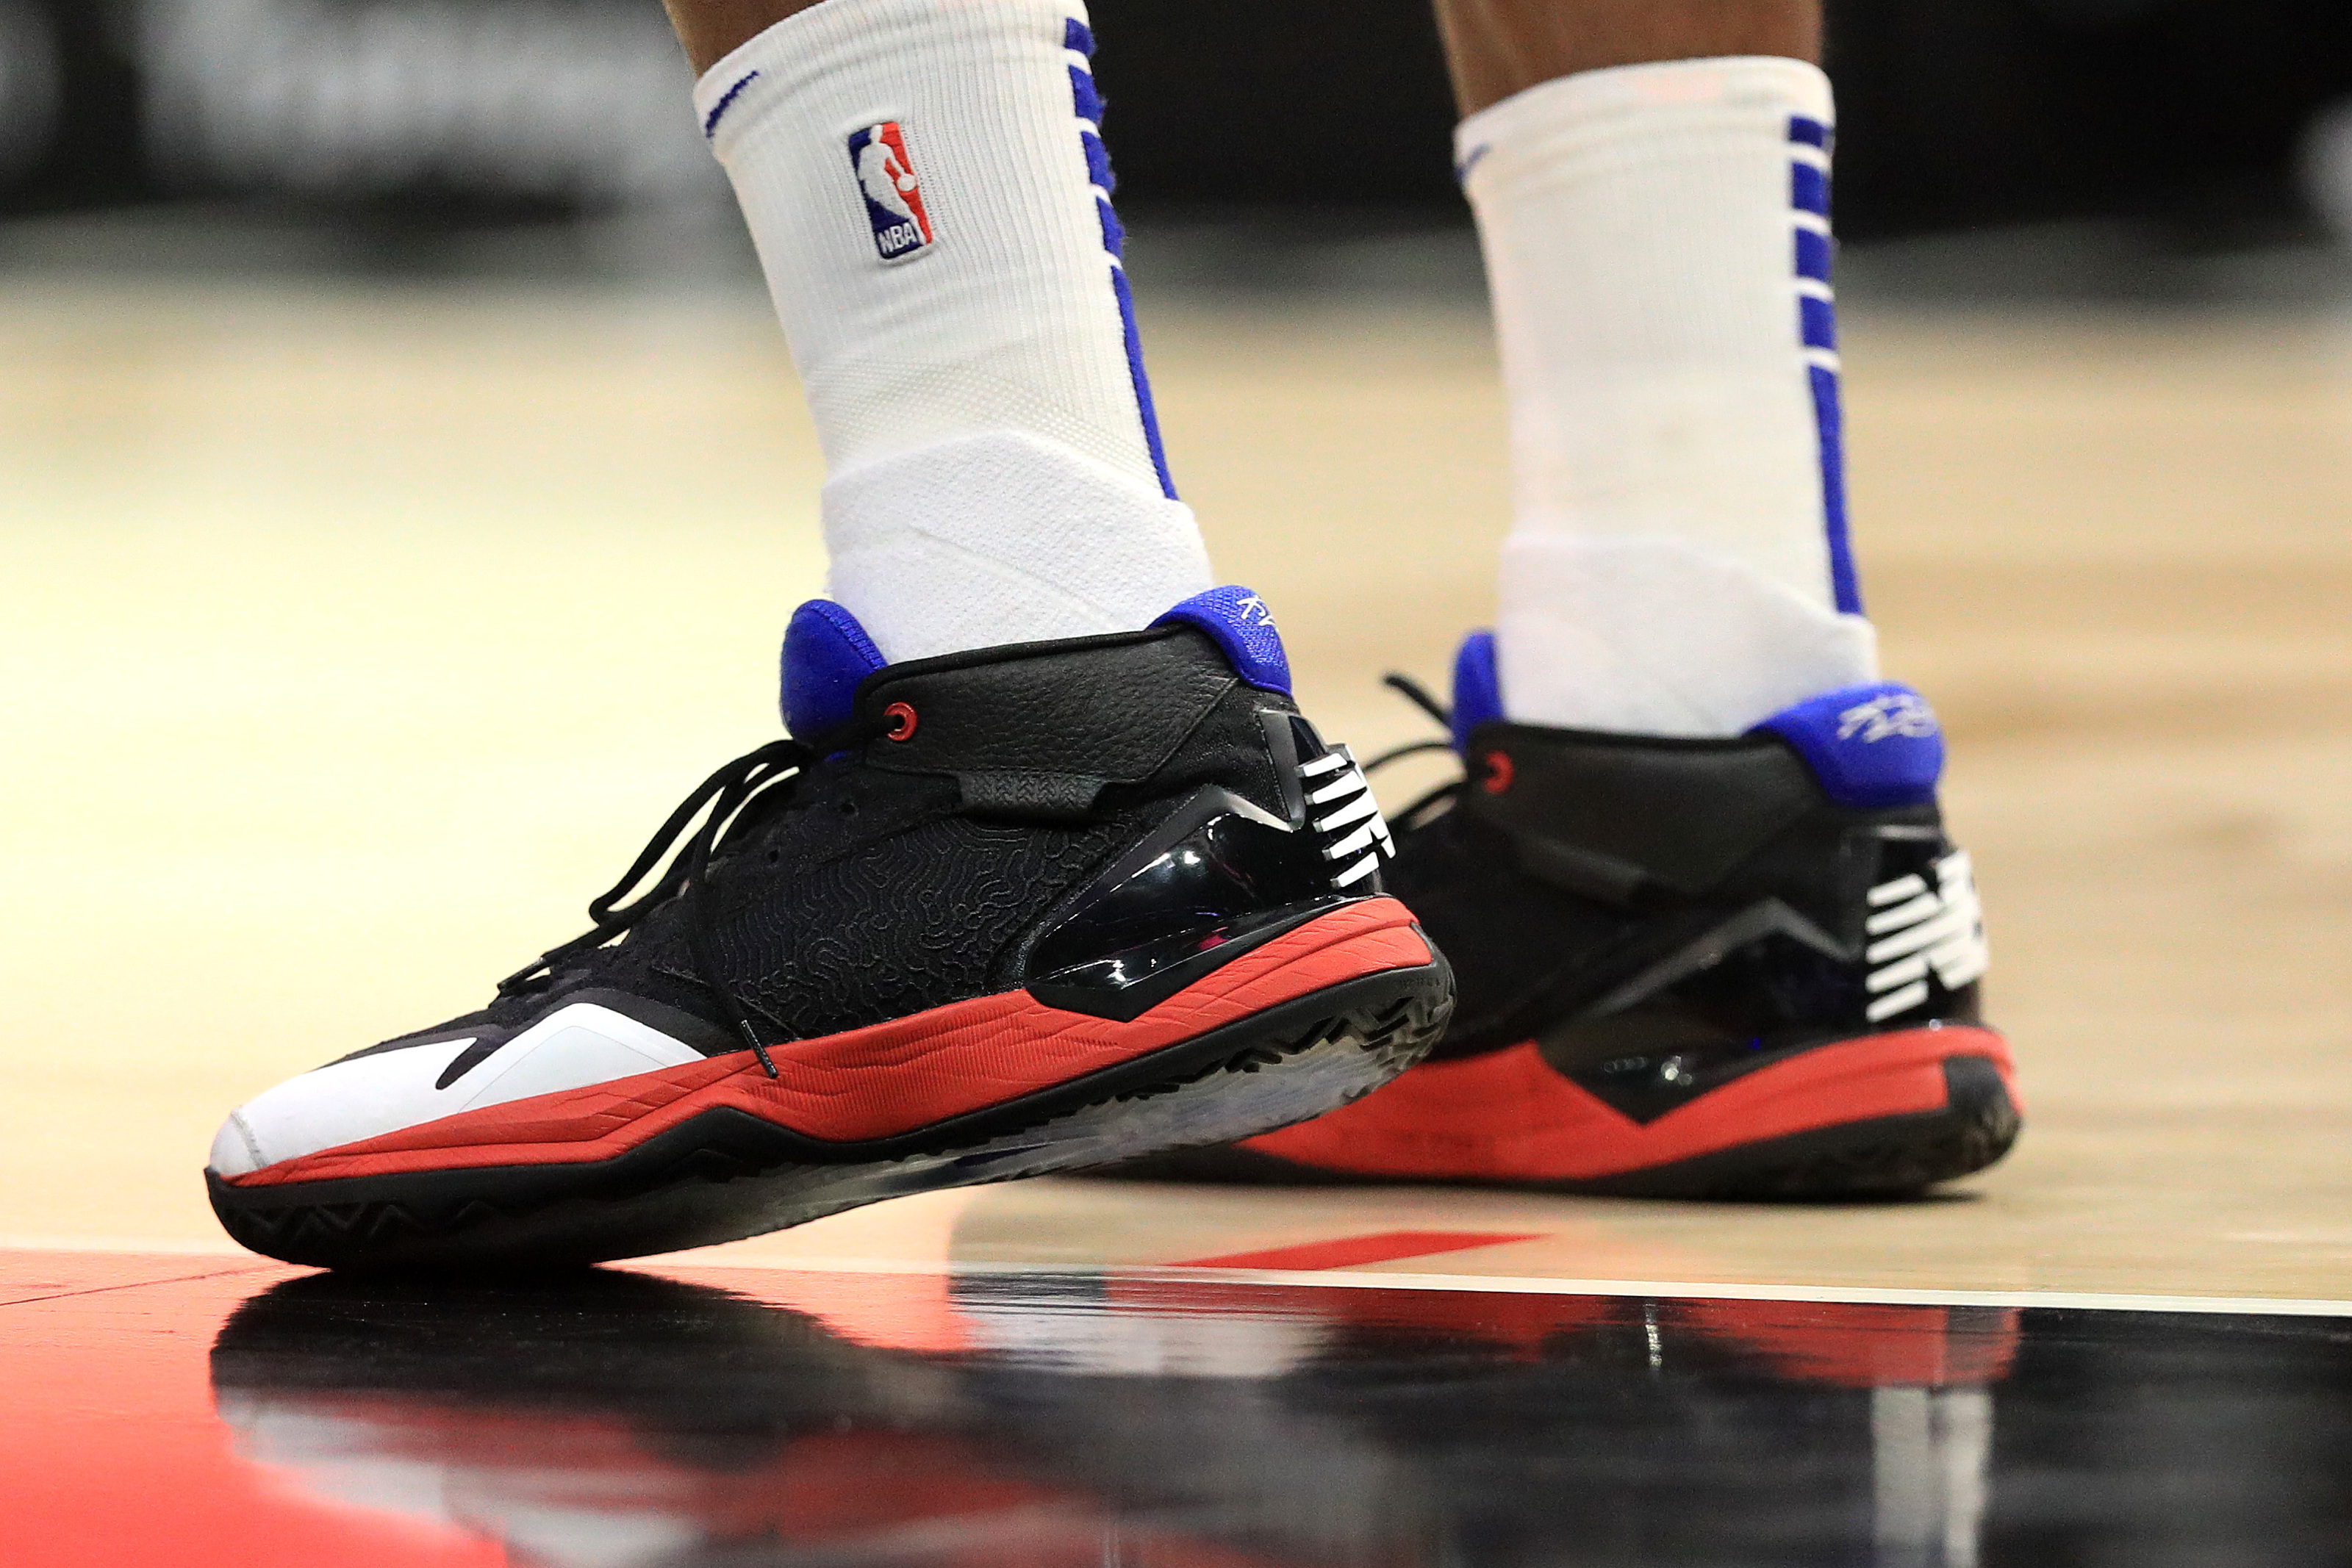 Clippers' Kawhi Leonard's sneaker brand, New Balance partners with NBA